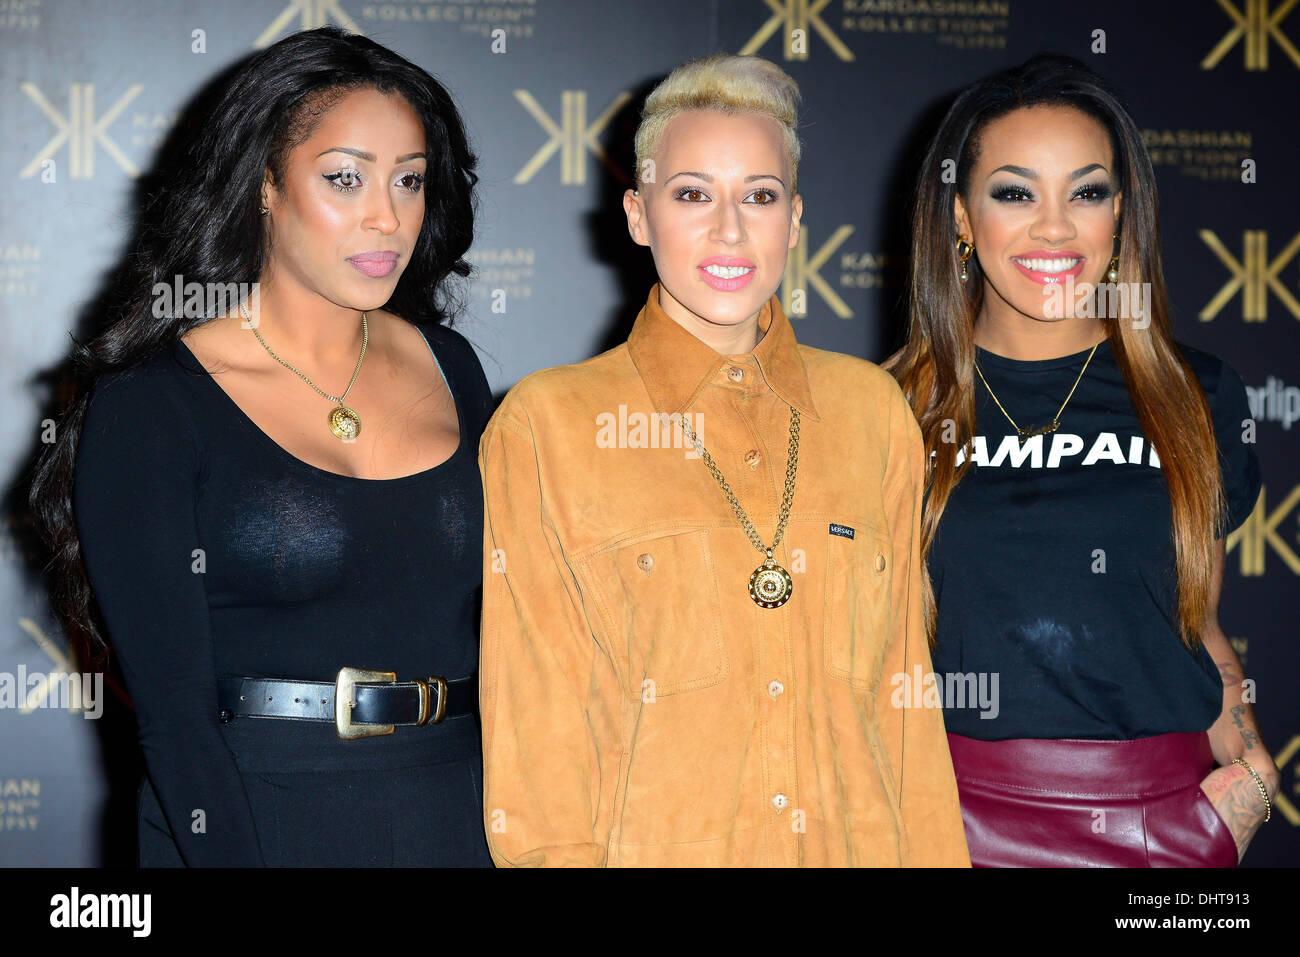 London UK 14th Nov 2013 : Stooshe attends the launch party for the Kardashian Kollection for Lipsy at Natural History - Stock Image